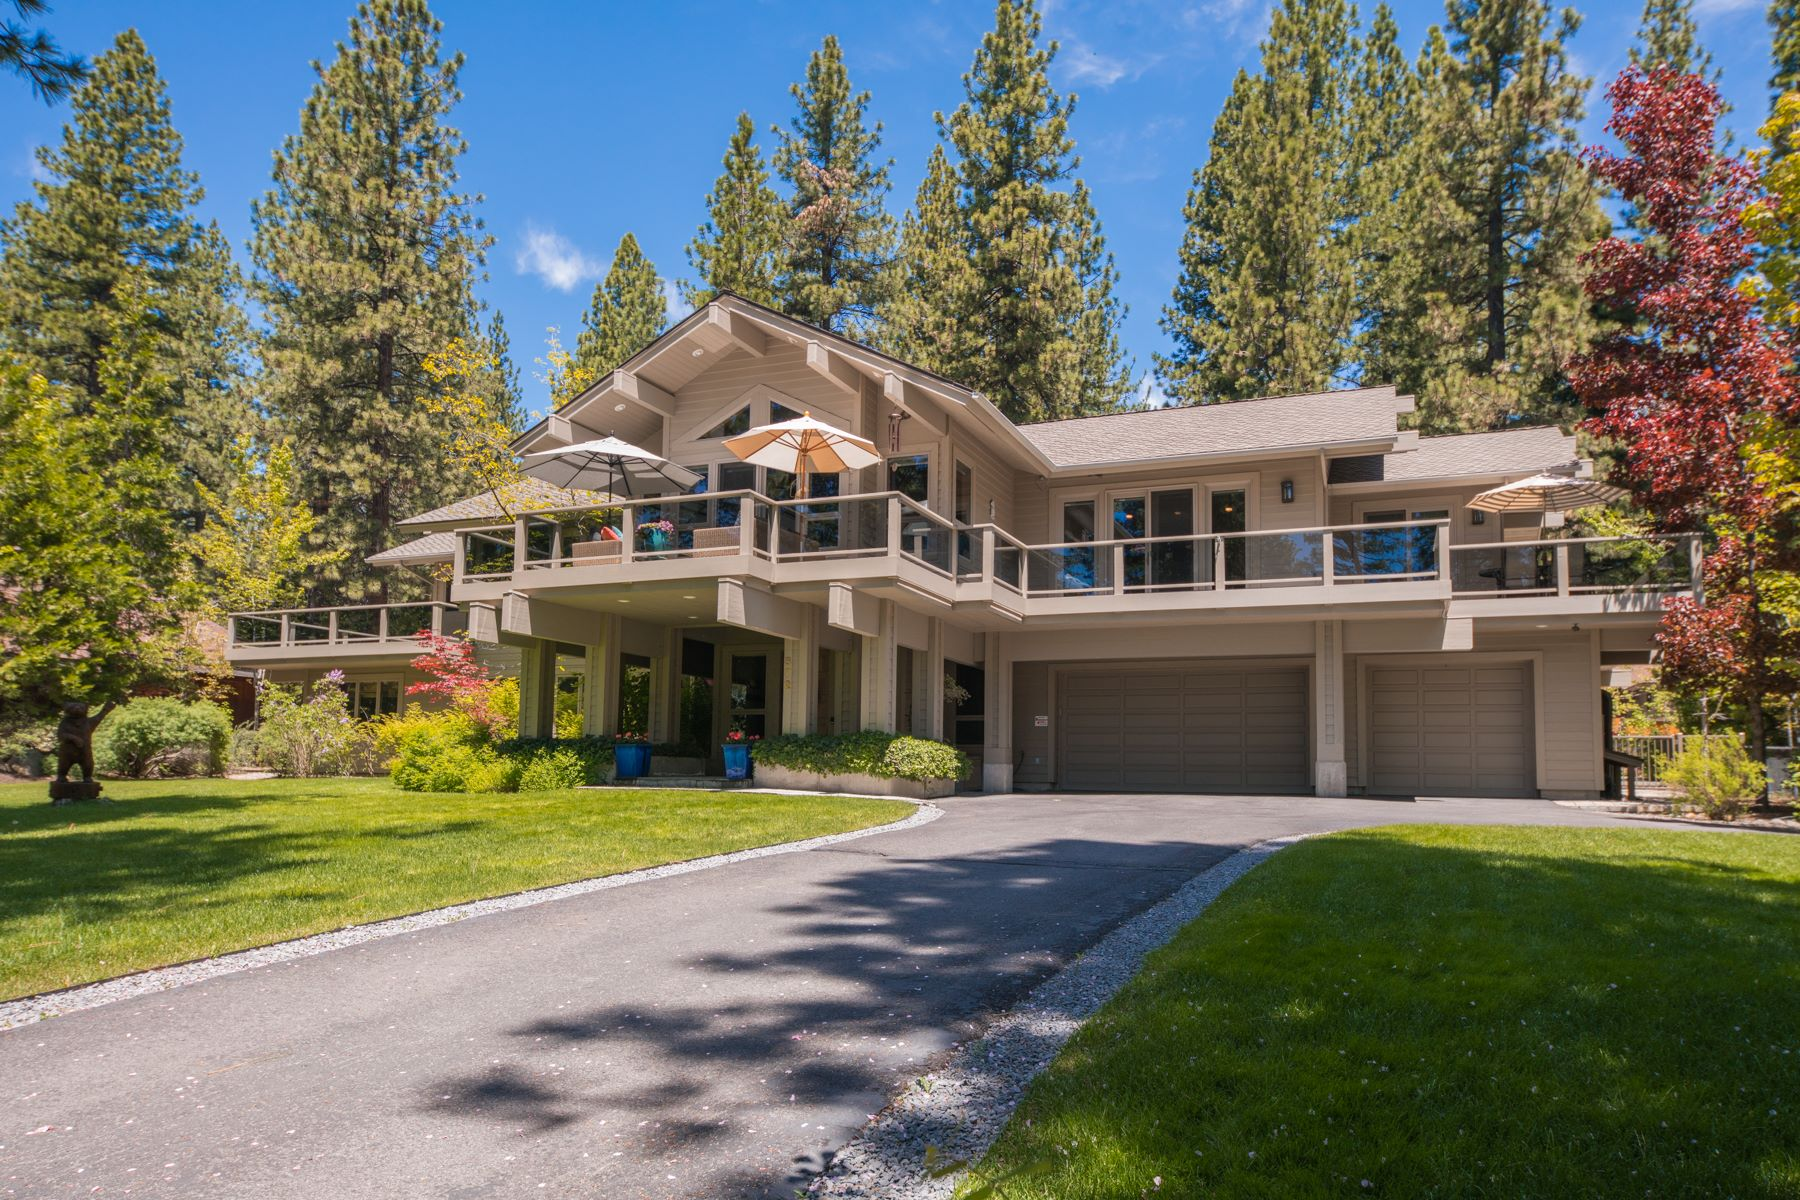 Single Family Home for Active at 872 Lakeshore Blvd., Incline Village, Nevada 872 Lakeshore Blvd. Incline Village, Nevada 89451 United States